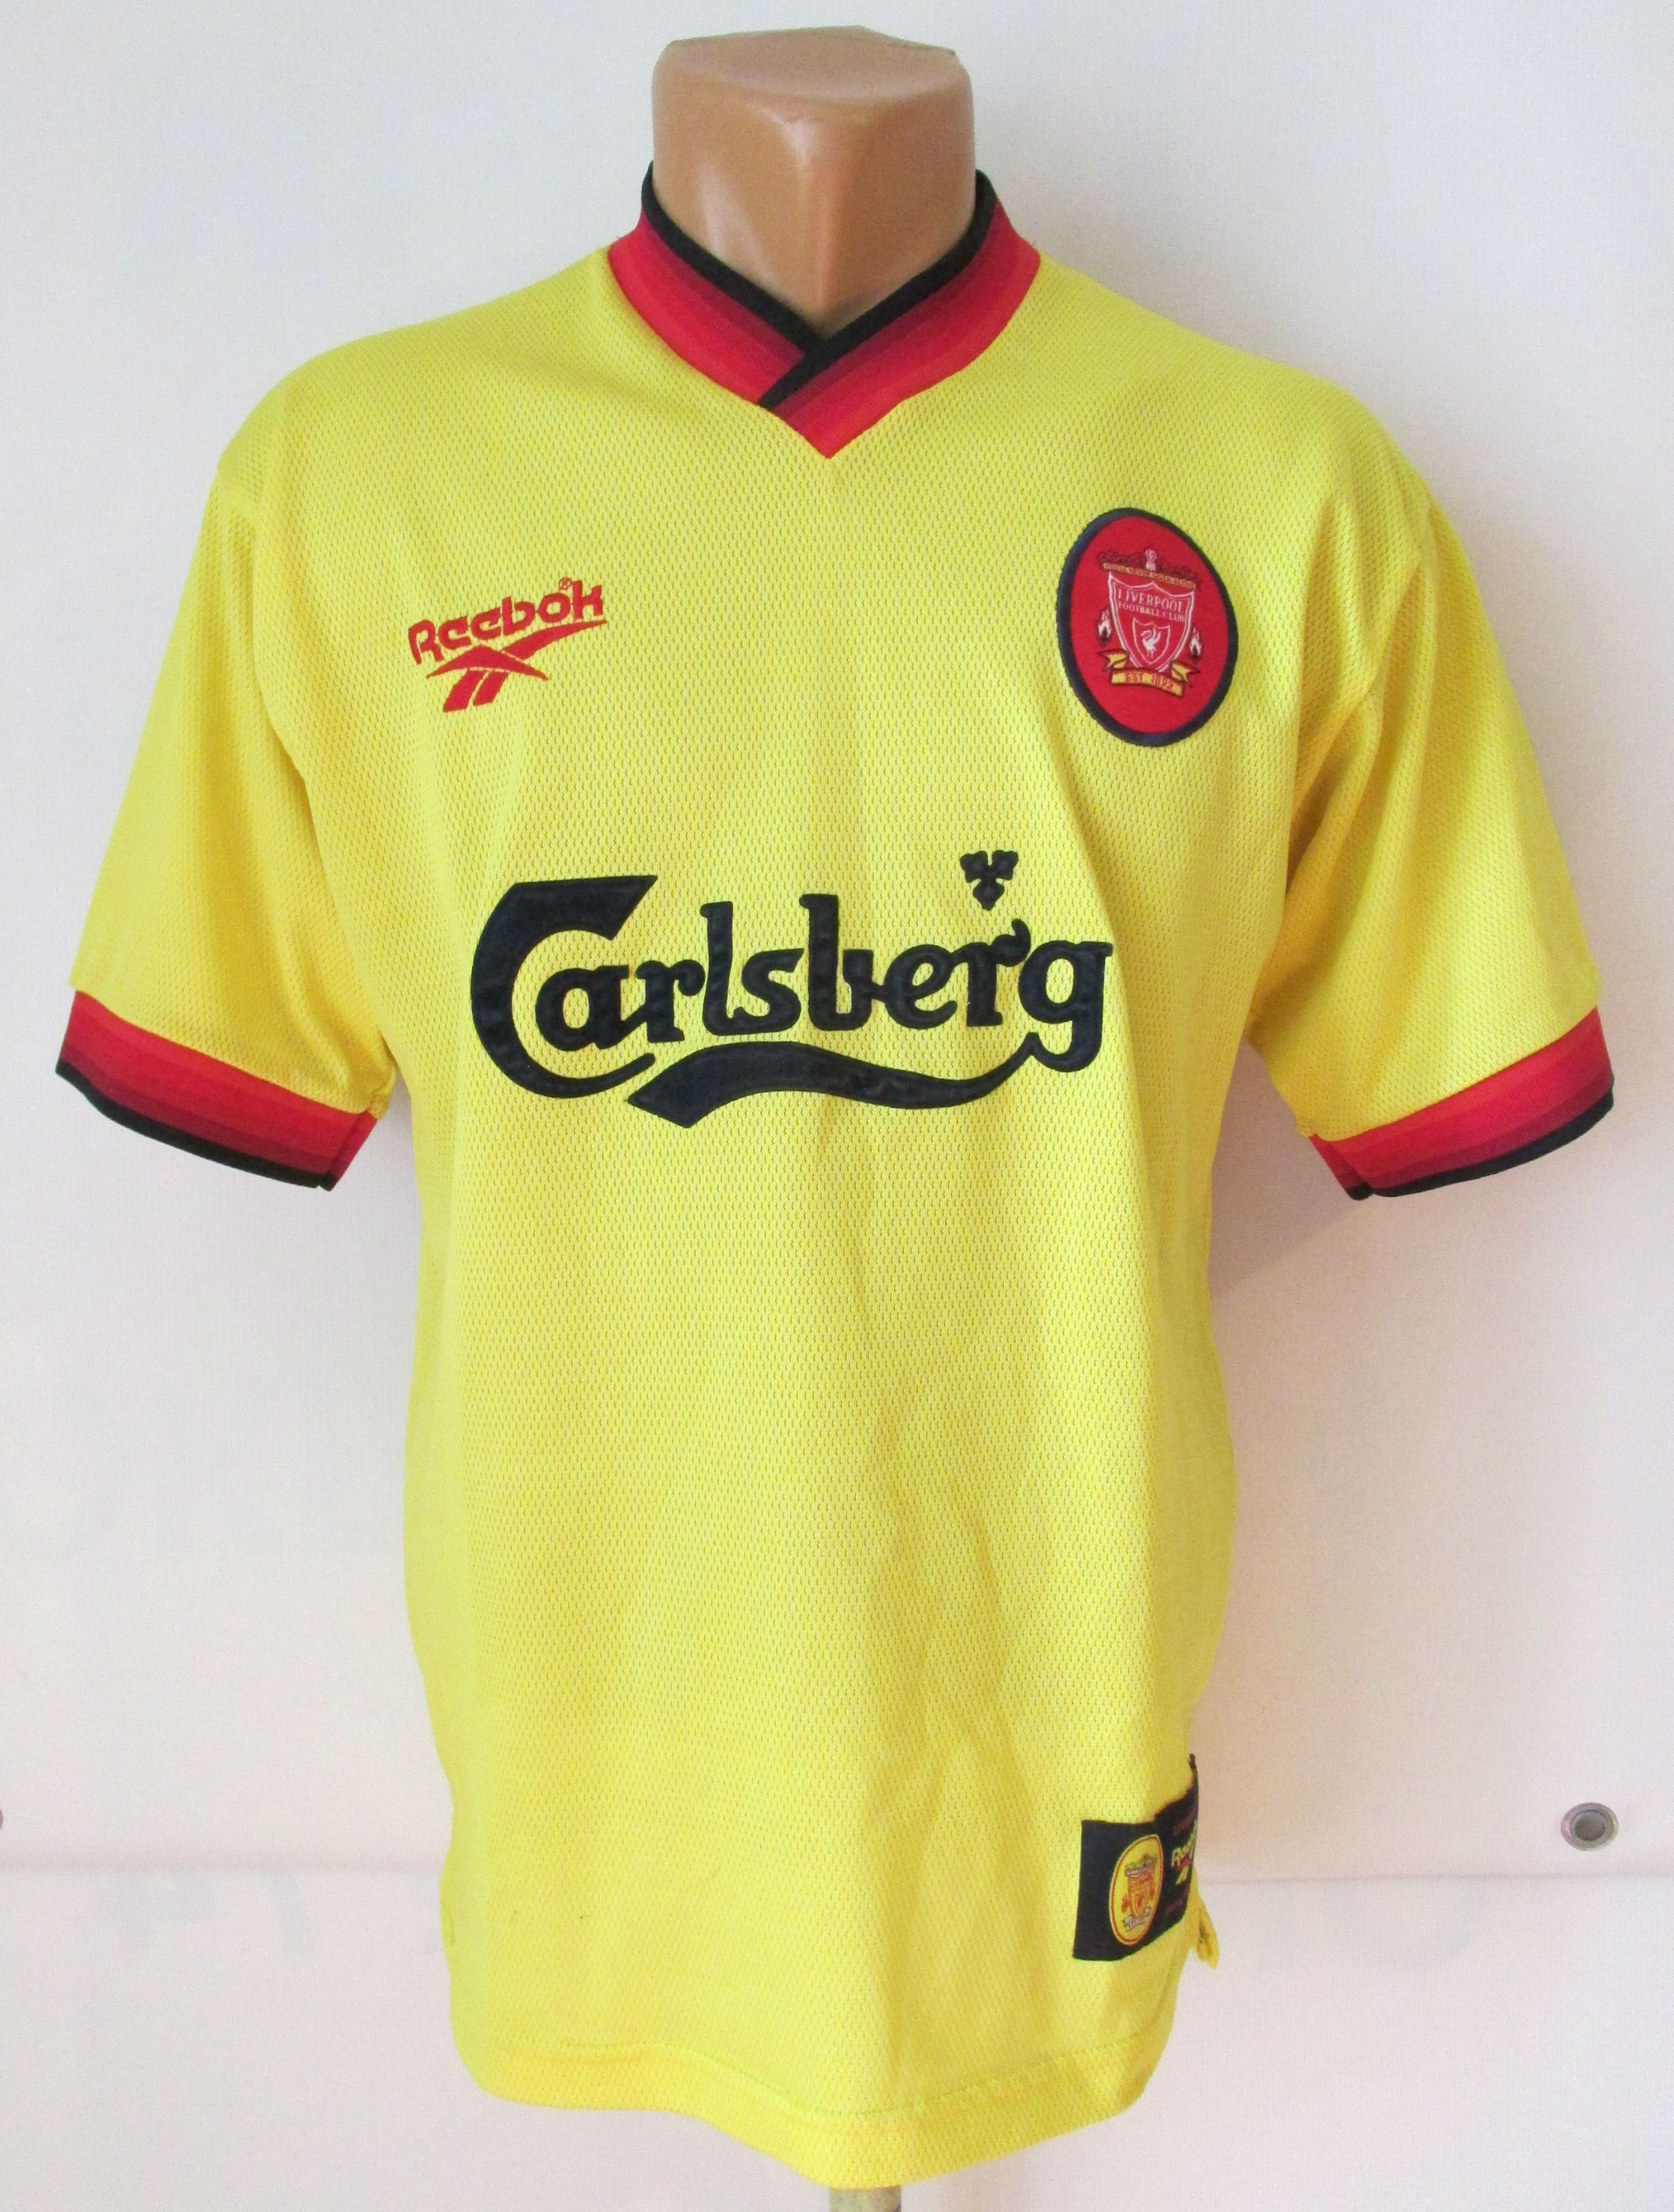 newest 8f2cc cb07c Liverpool 1997/1998/1999 away football shirt by Reebok LFC ...